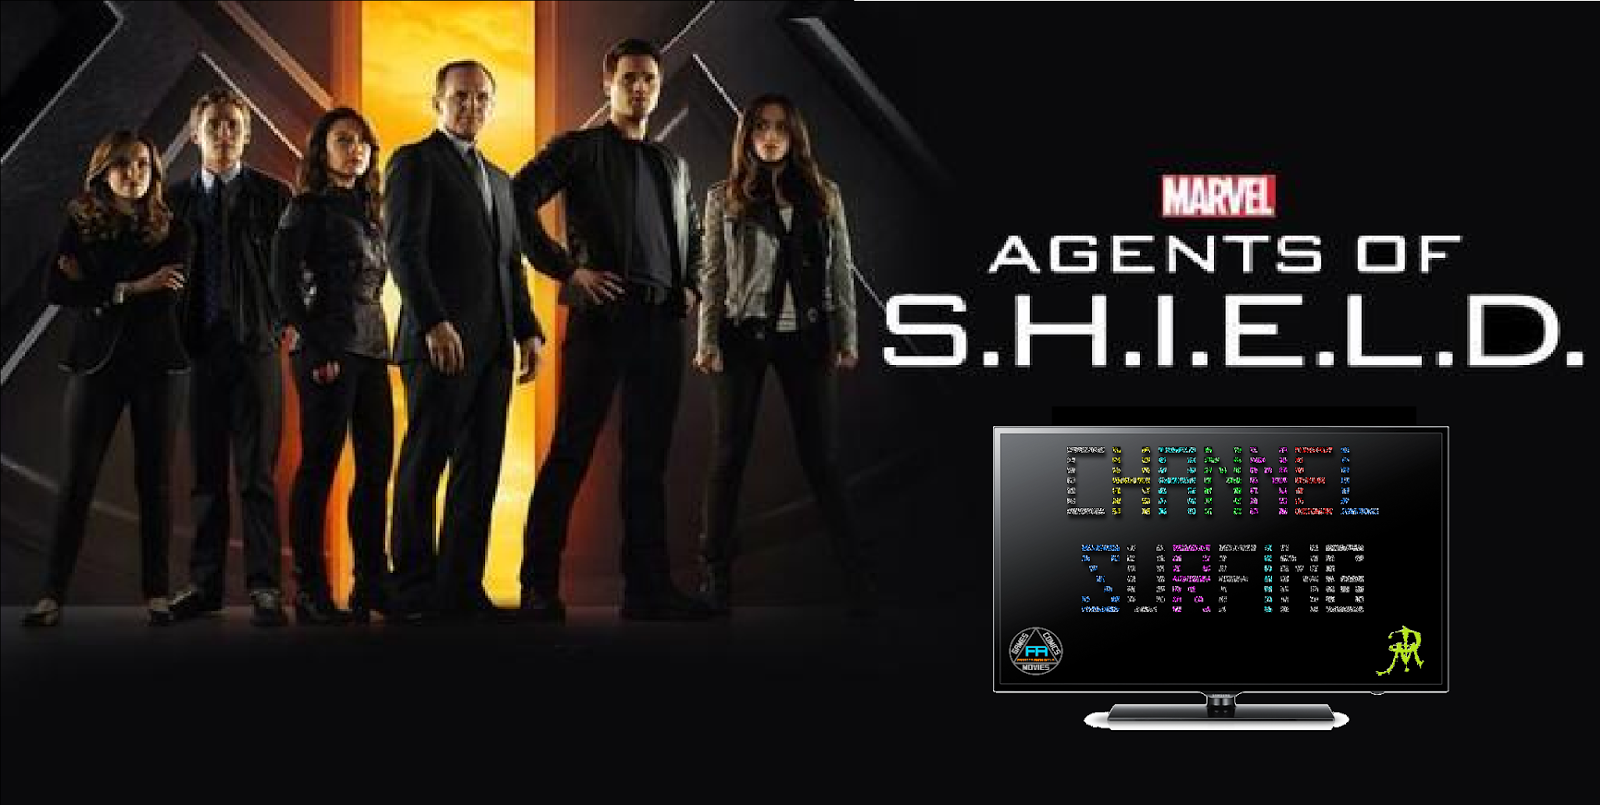 Agents of S.H.I.E.L.D. news and Rumors